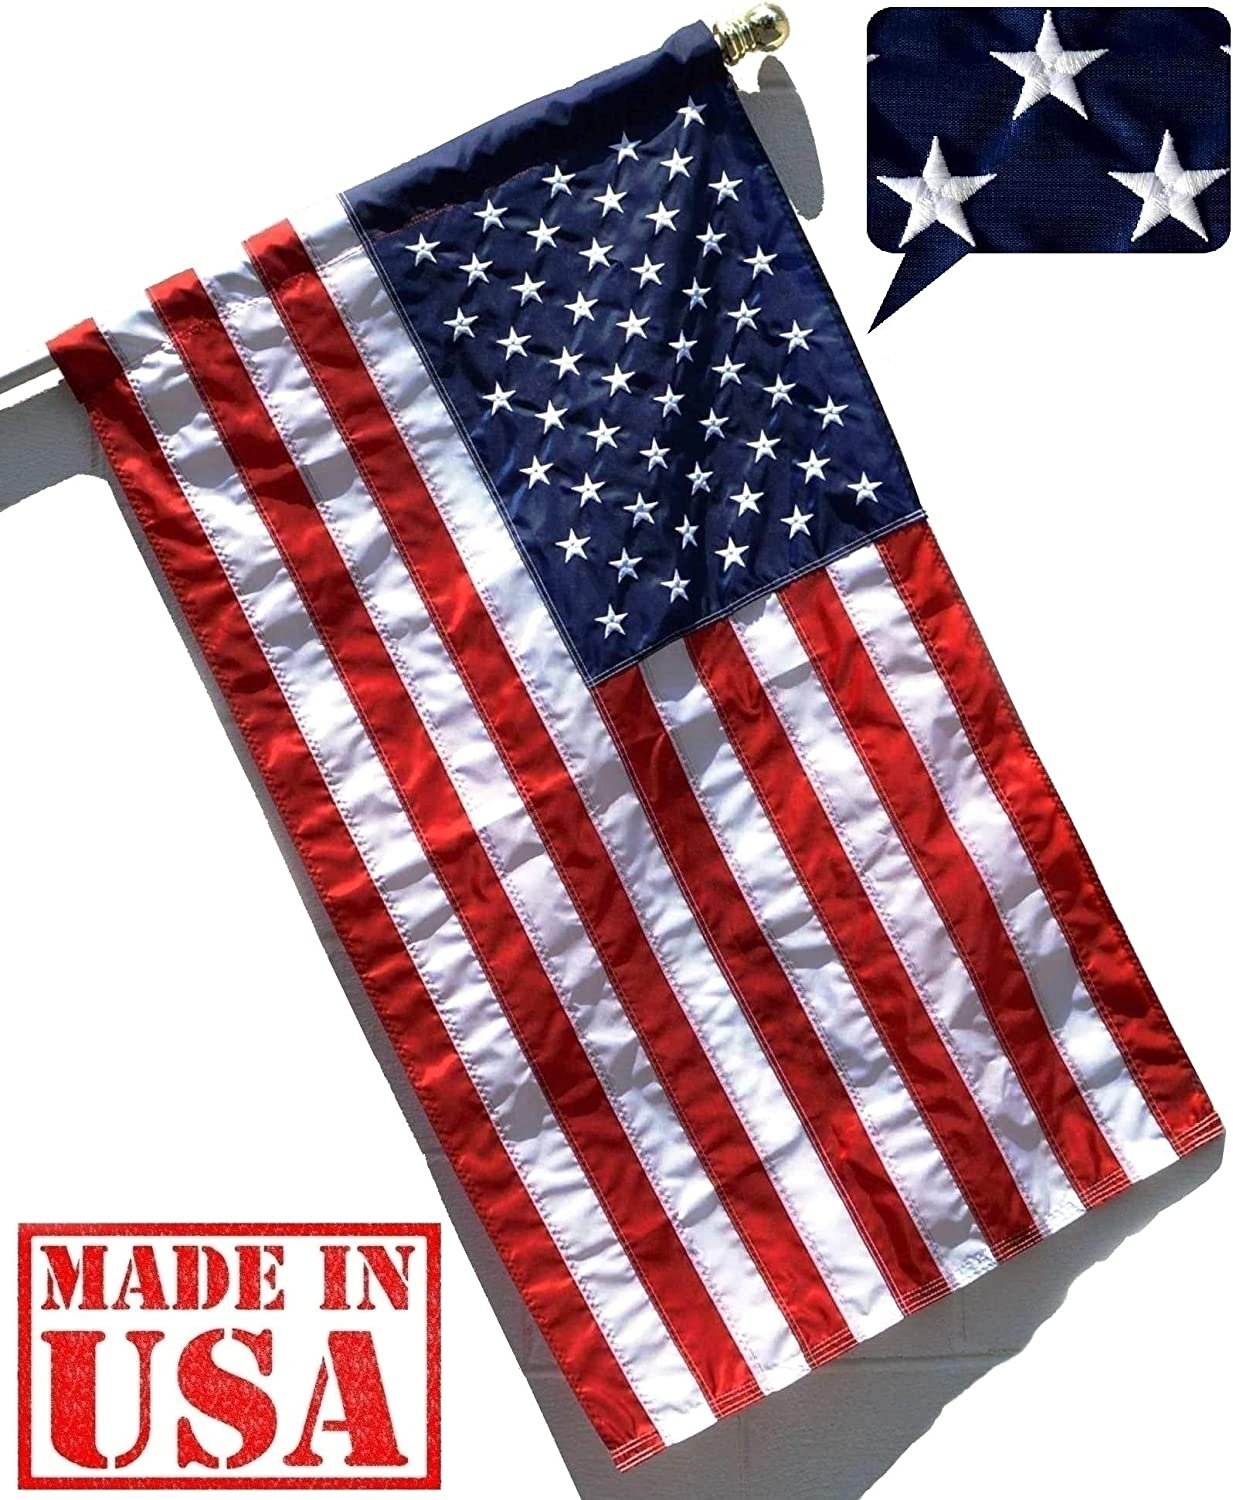 US Flag Factory - 2.5x4 FT American Flag (Sleeved) (Embroidered Stars, Sewn Stripes) - Outdoor SolarMax Nylon - 100% Made in America